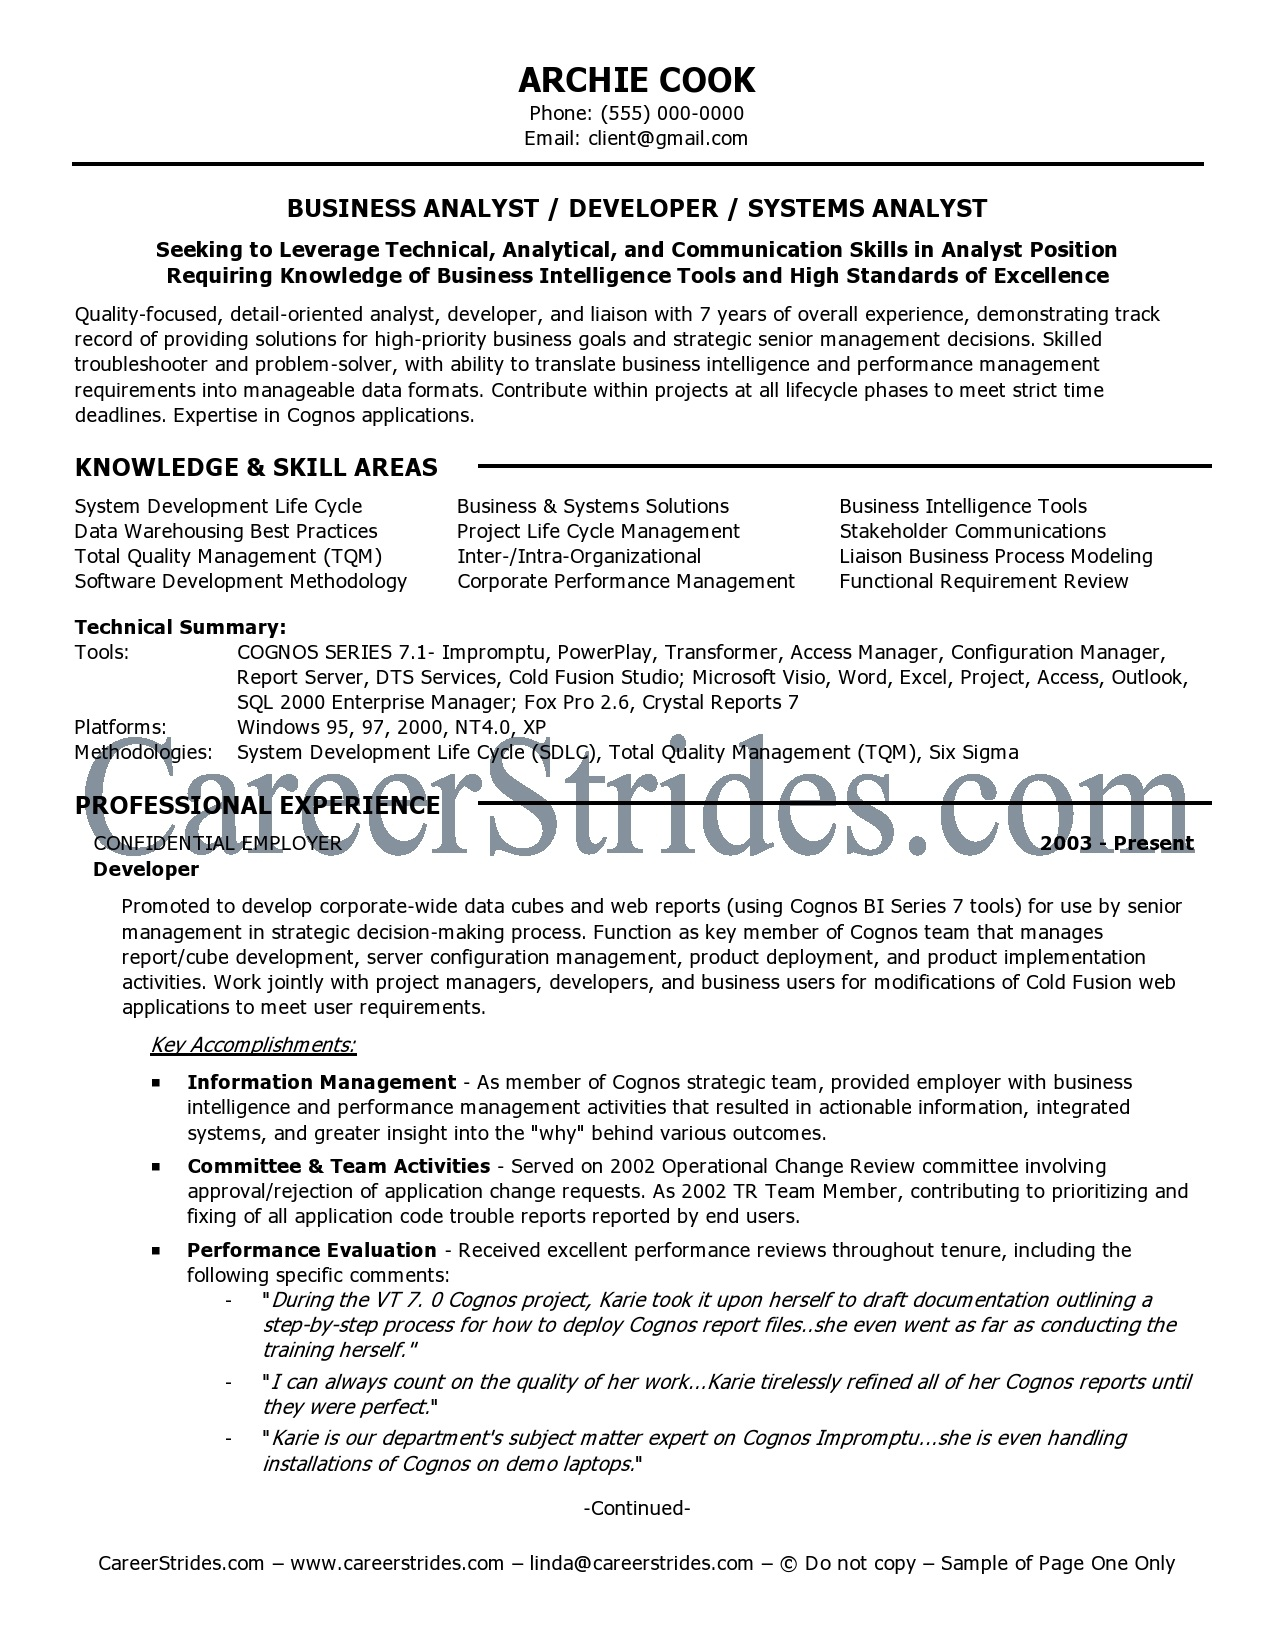 Awesome business analyst resume format